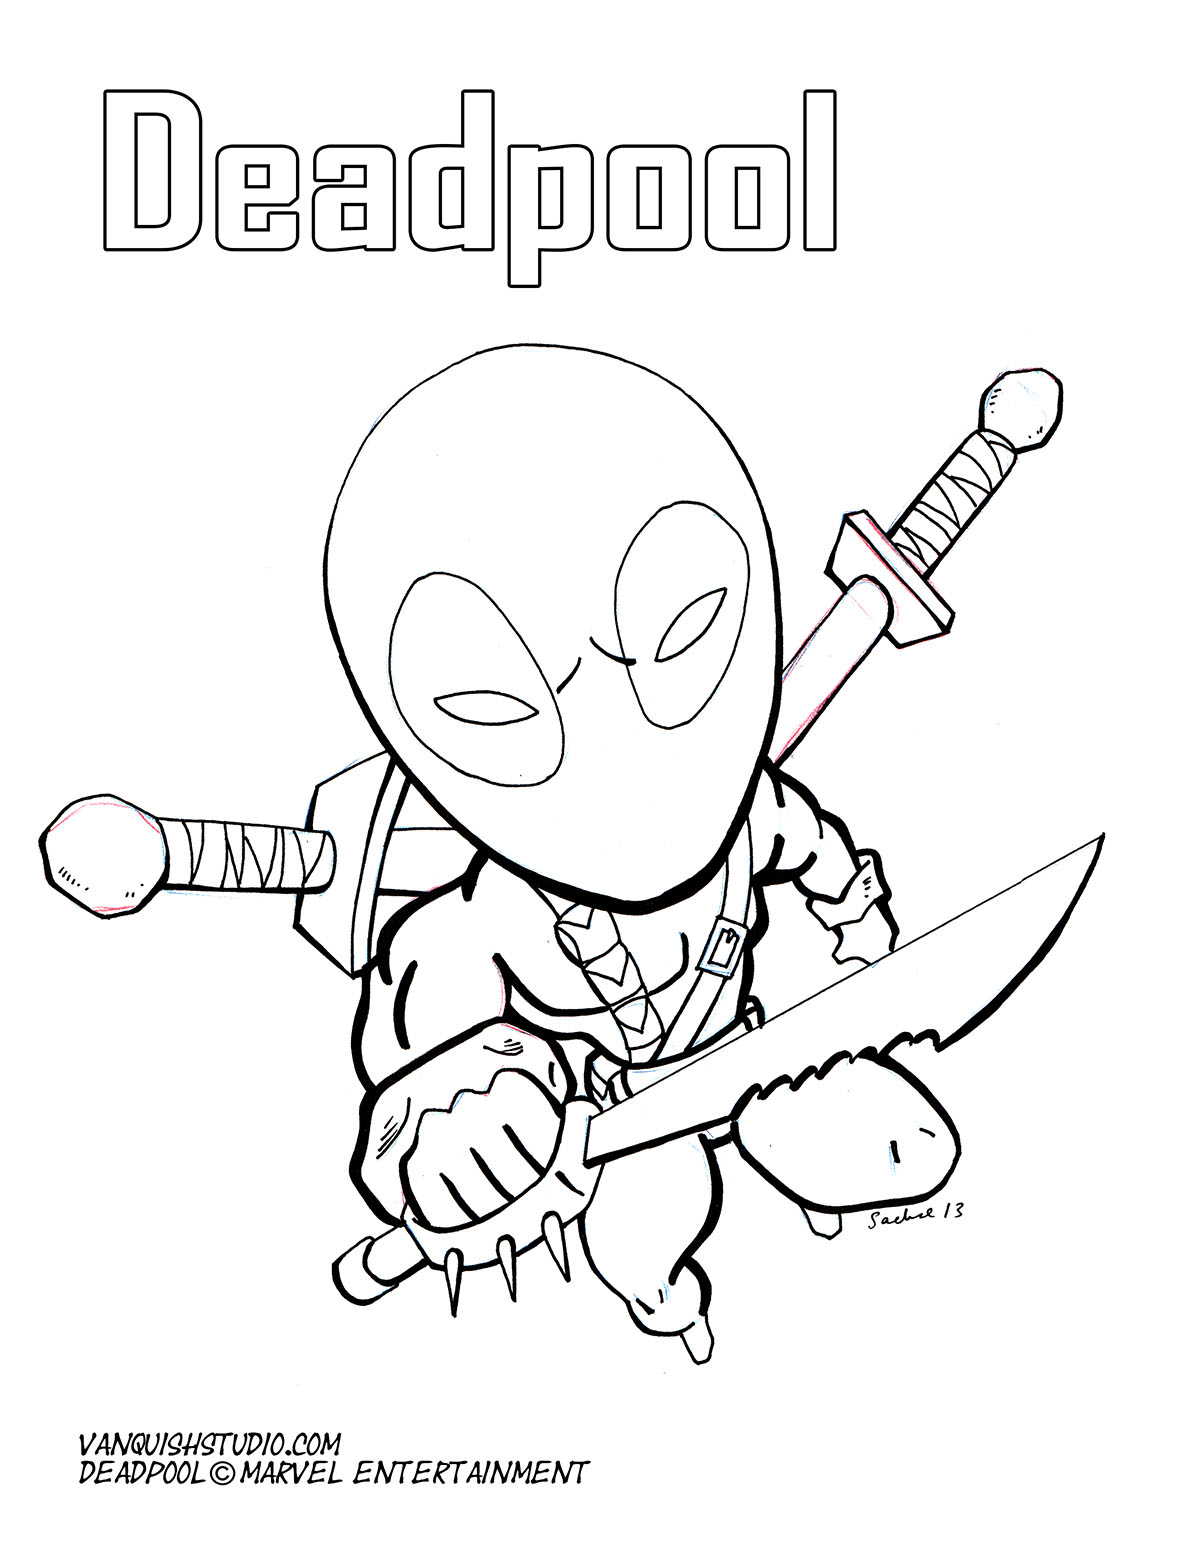 Deadpool Coloring Pages: Deadpool Marvel Comics Coloring Pages